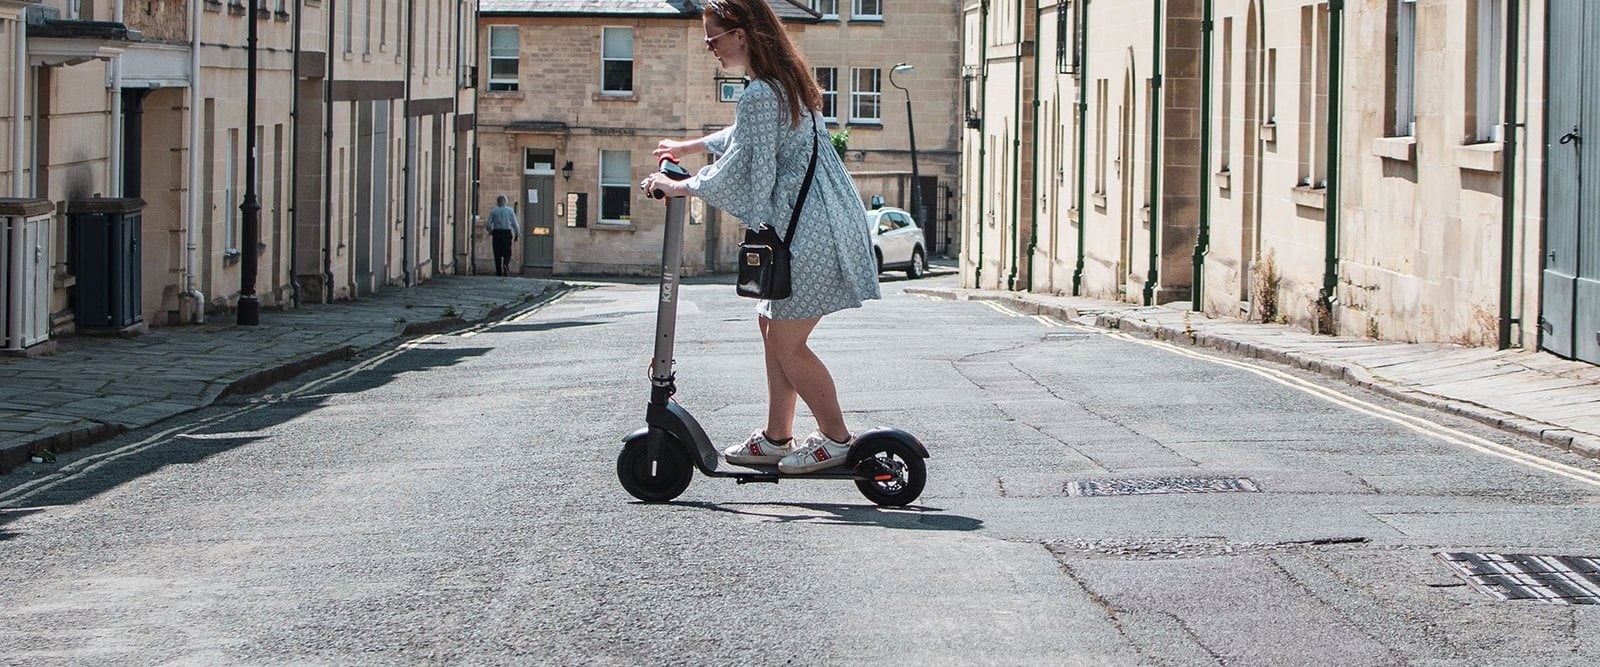 kiq electric scooter in street